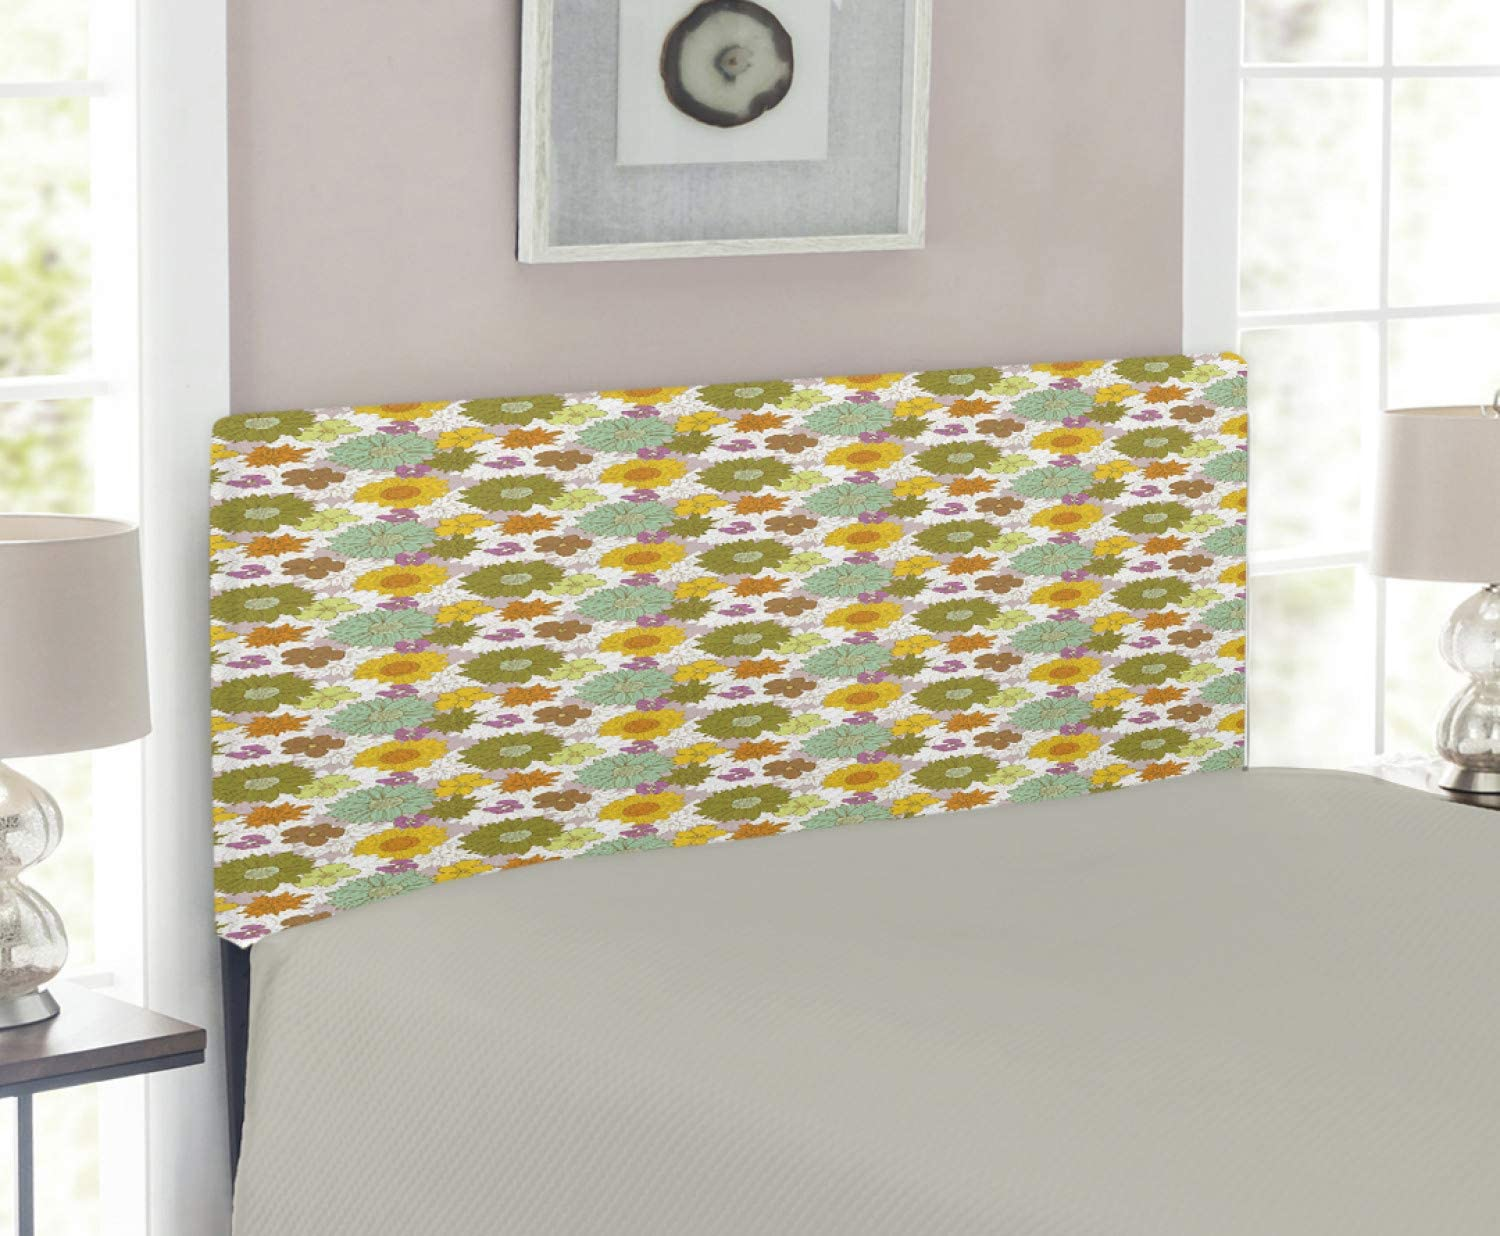 Ambesonne Flower Headboard Max low-pricing 84% OFF Retro Colored Blossoms Small and Big